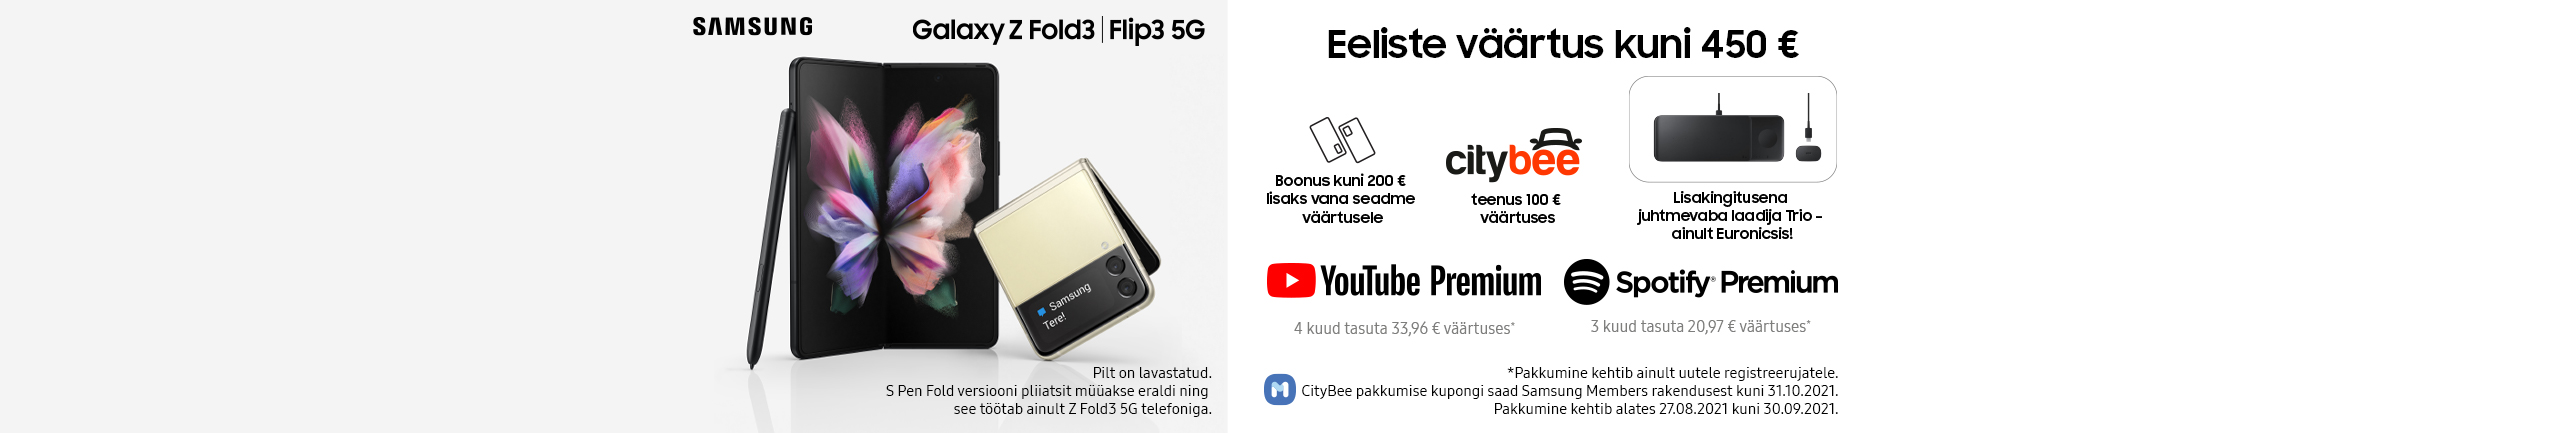 Buy Samsung Galaxy Z Flip 3 and get a wireless charger trio as a complimentary gift!